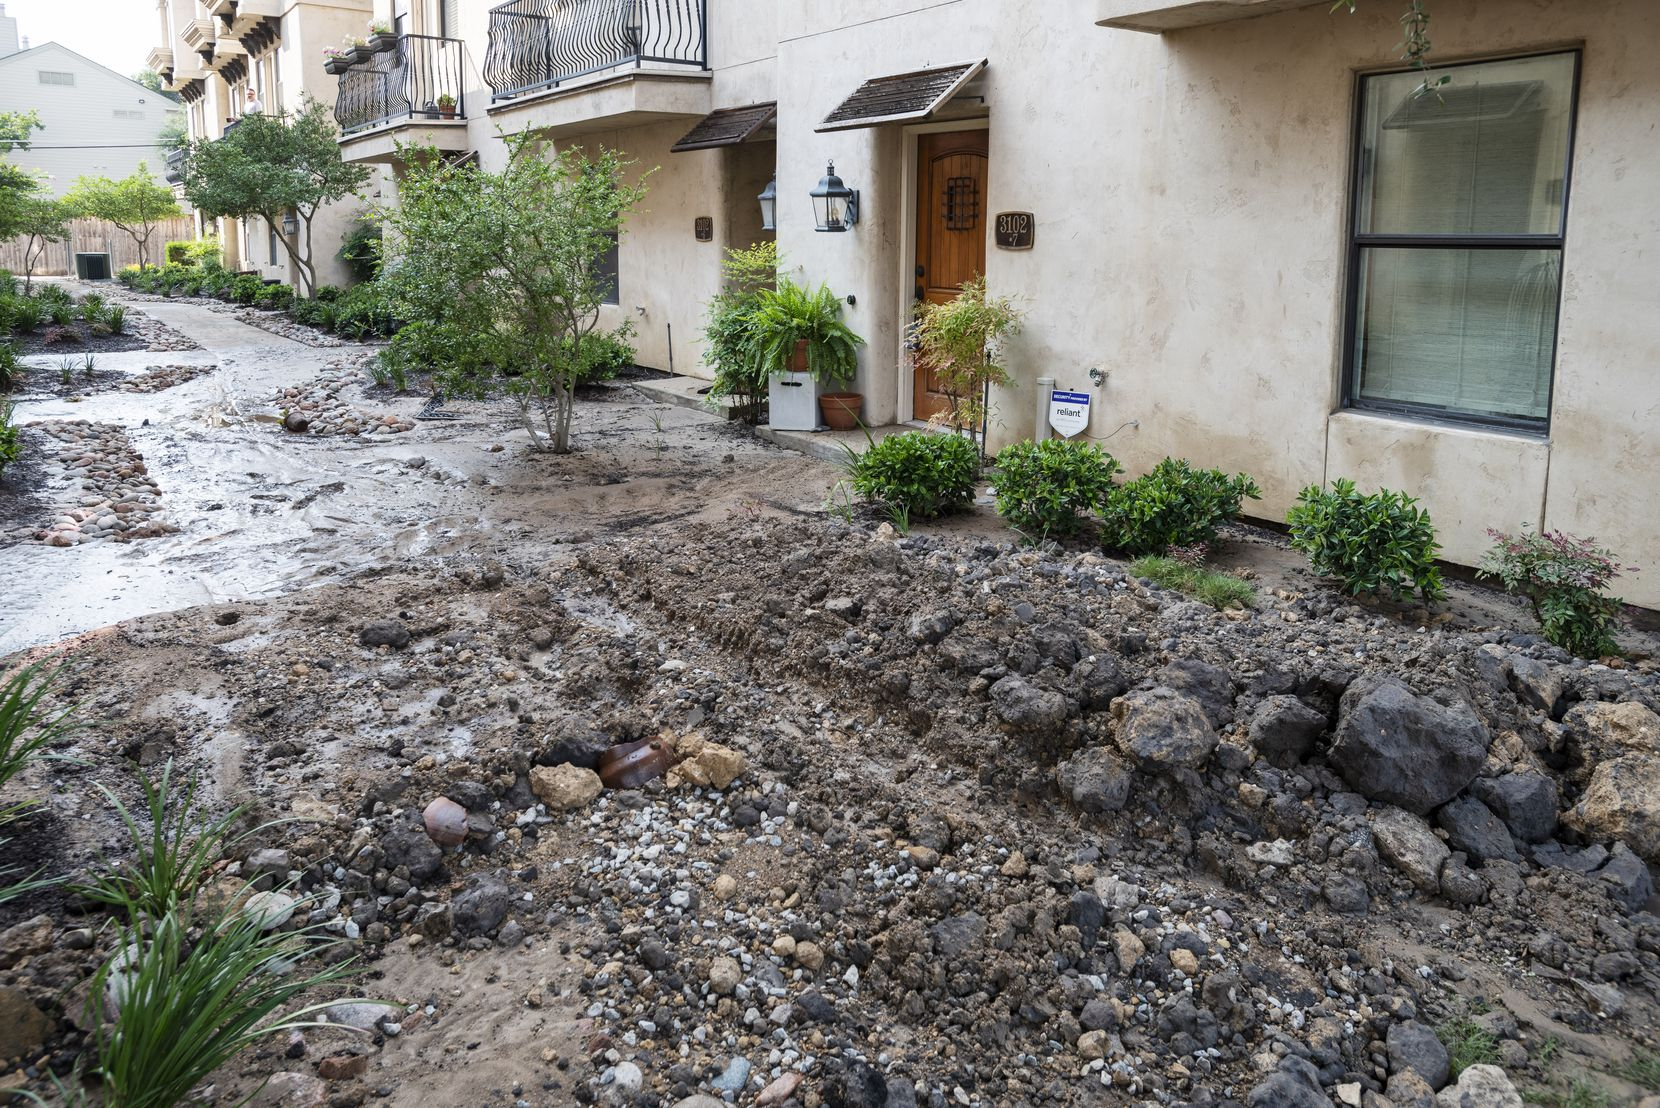 The flooding left a sludgy mix of mud and asphalt along parts of Ross, including a courtyard at the Veranda II apartments.